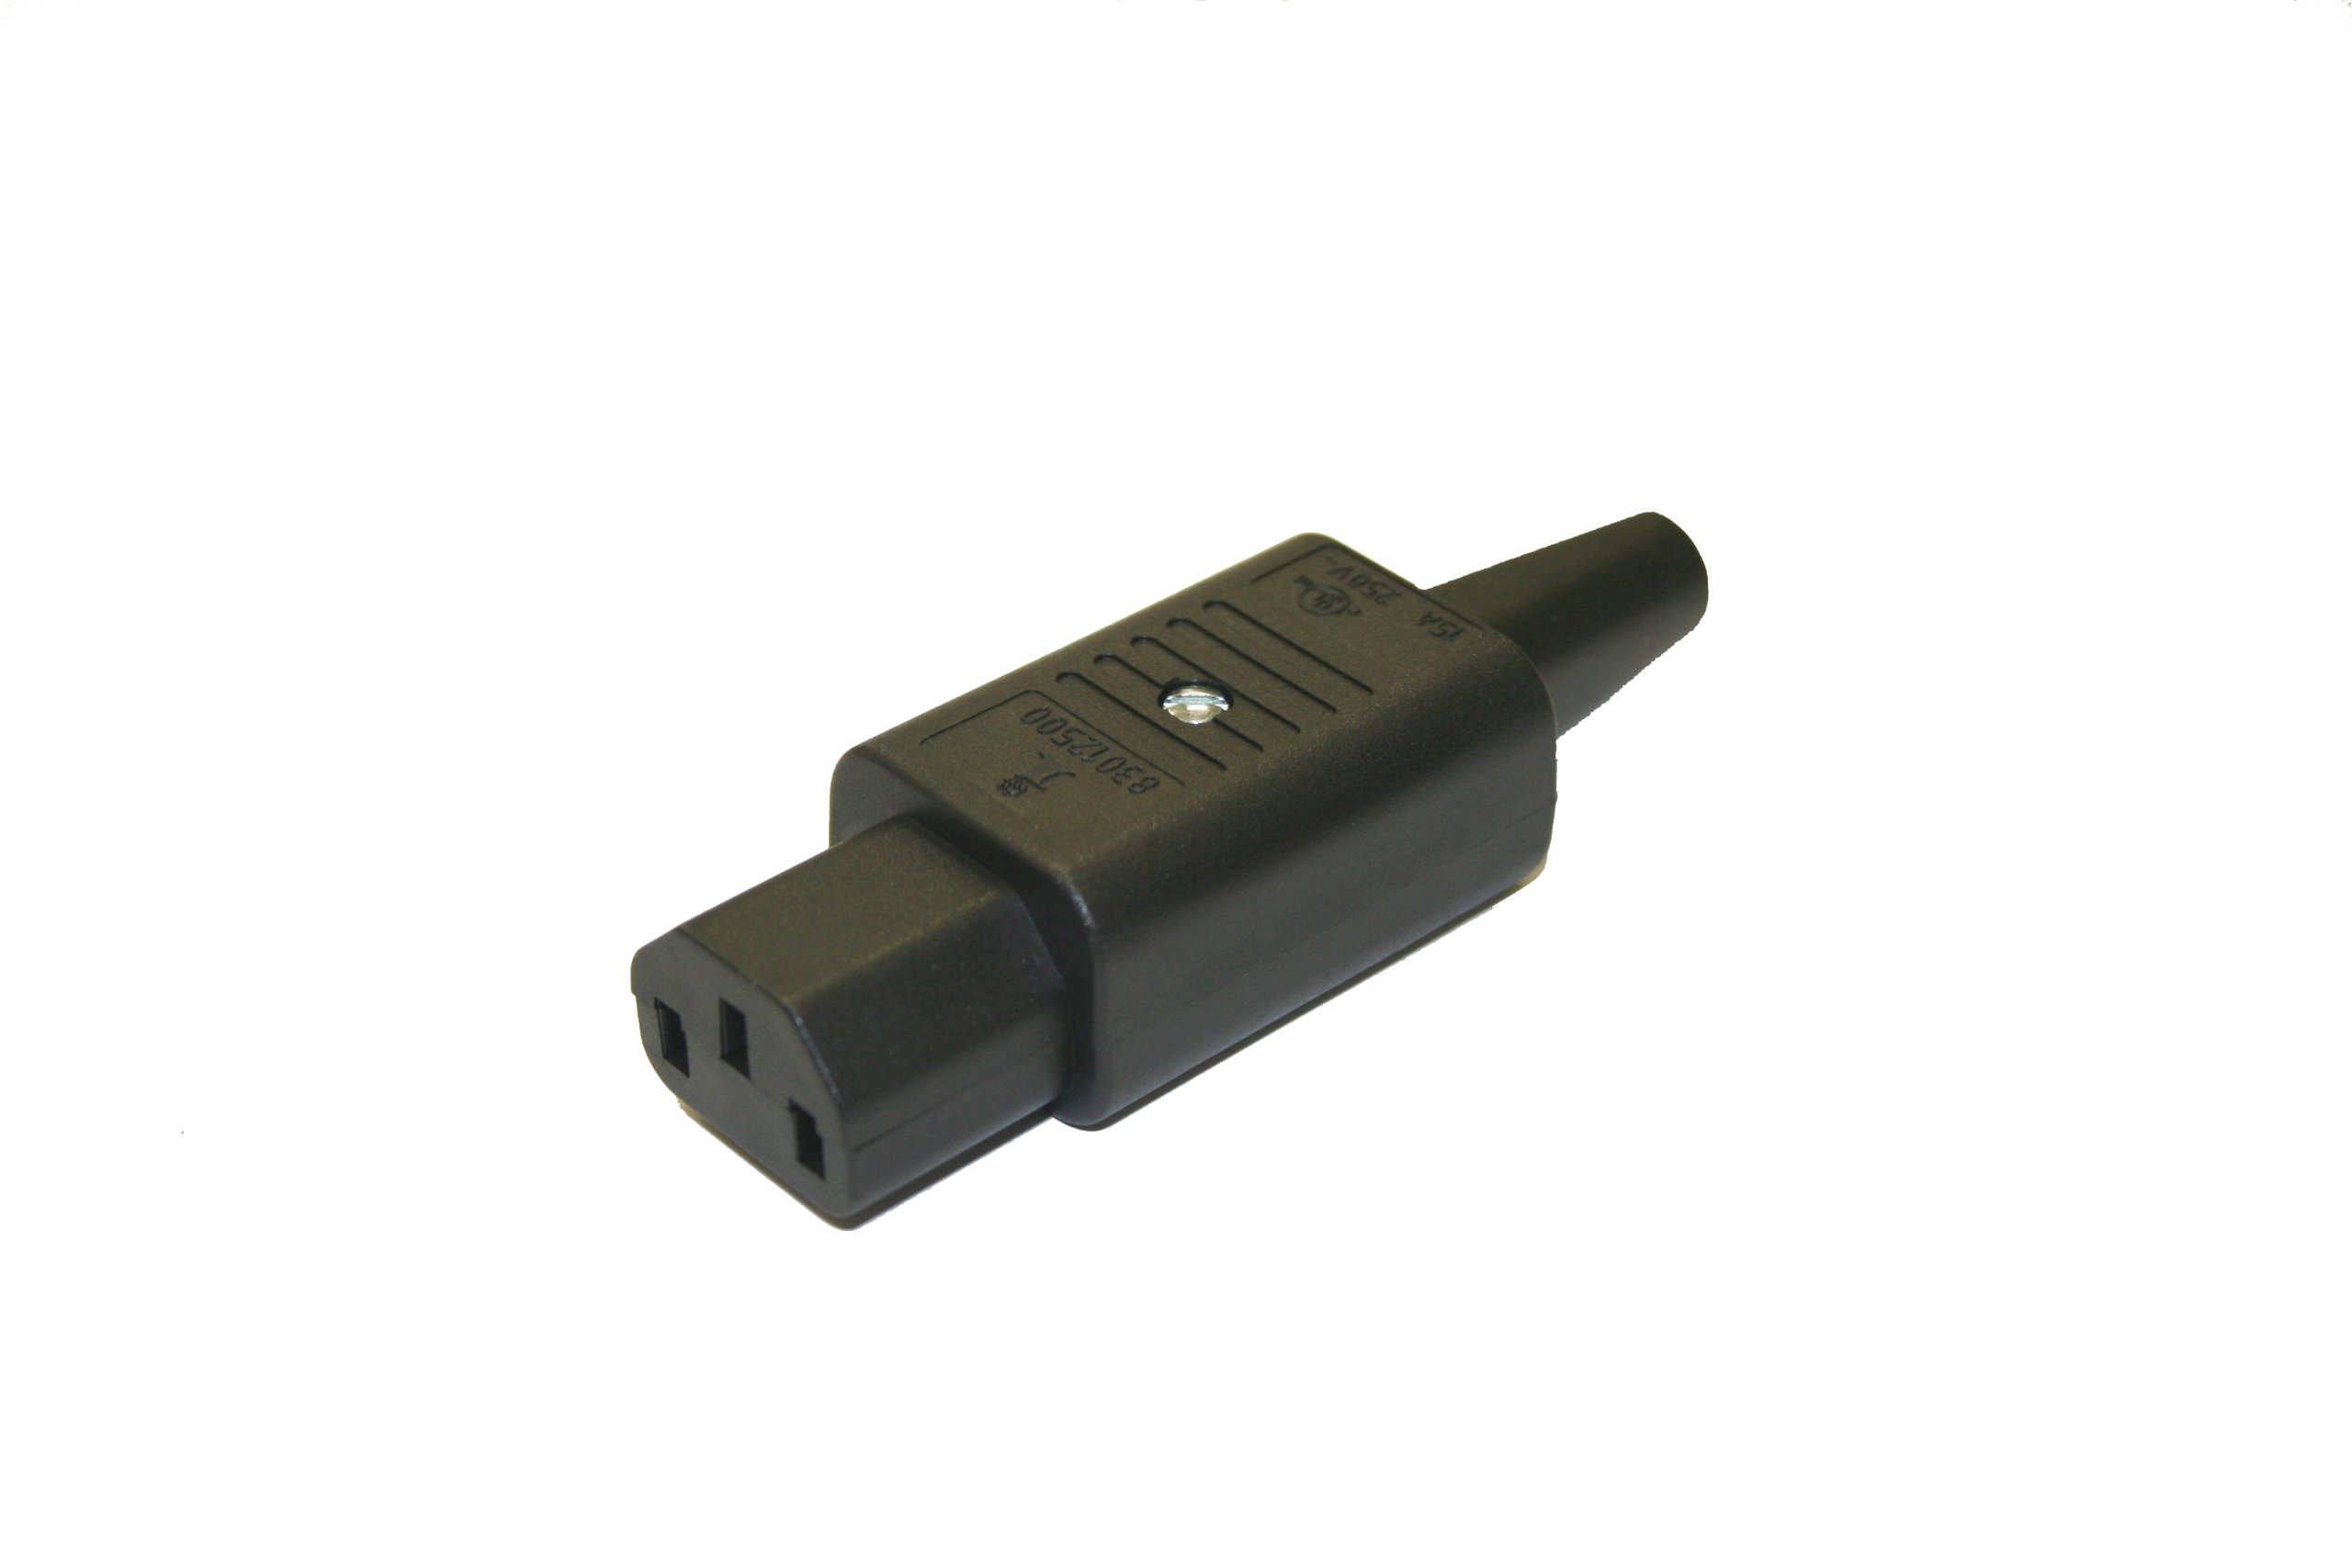 Interpower 83012500 IEC 60320 C13 Rewireable Connector, IEC 60320 C13 Socket Type, Black, 10A/15A Rating, 250VAC Rating